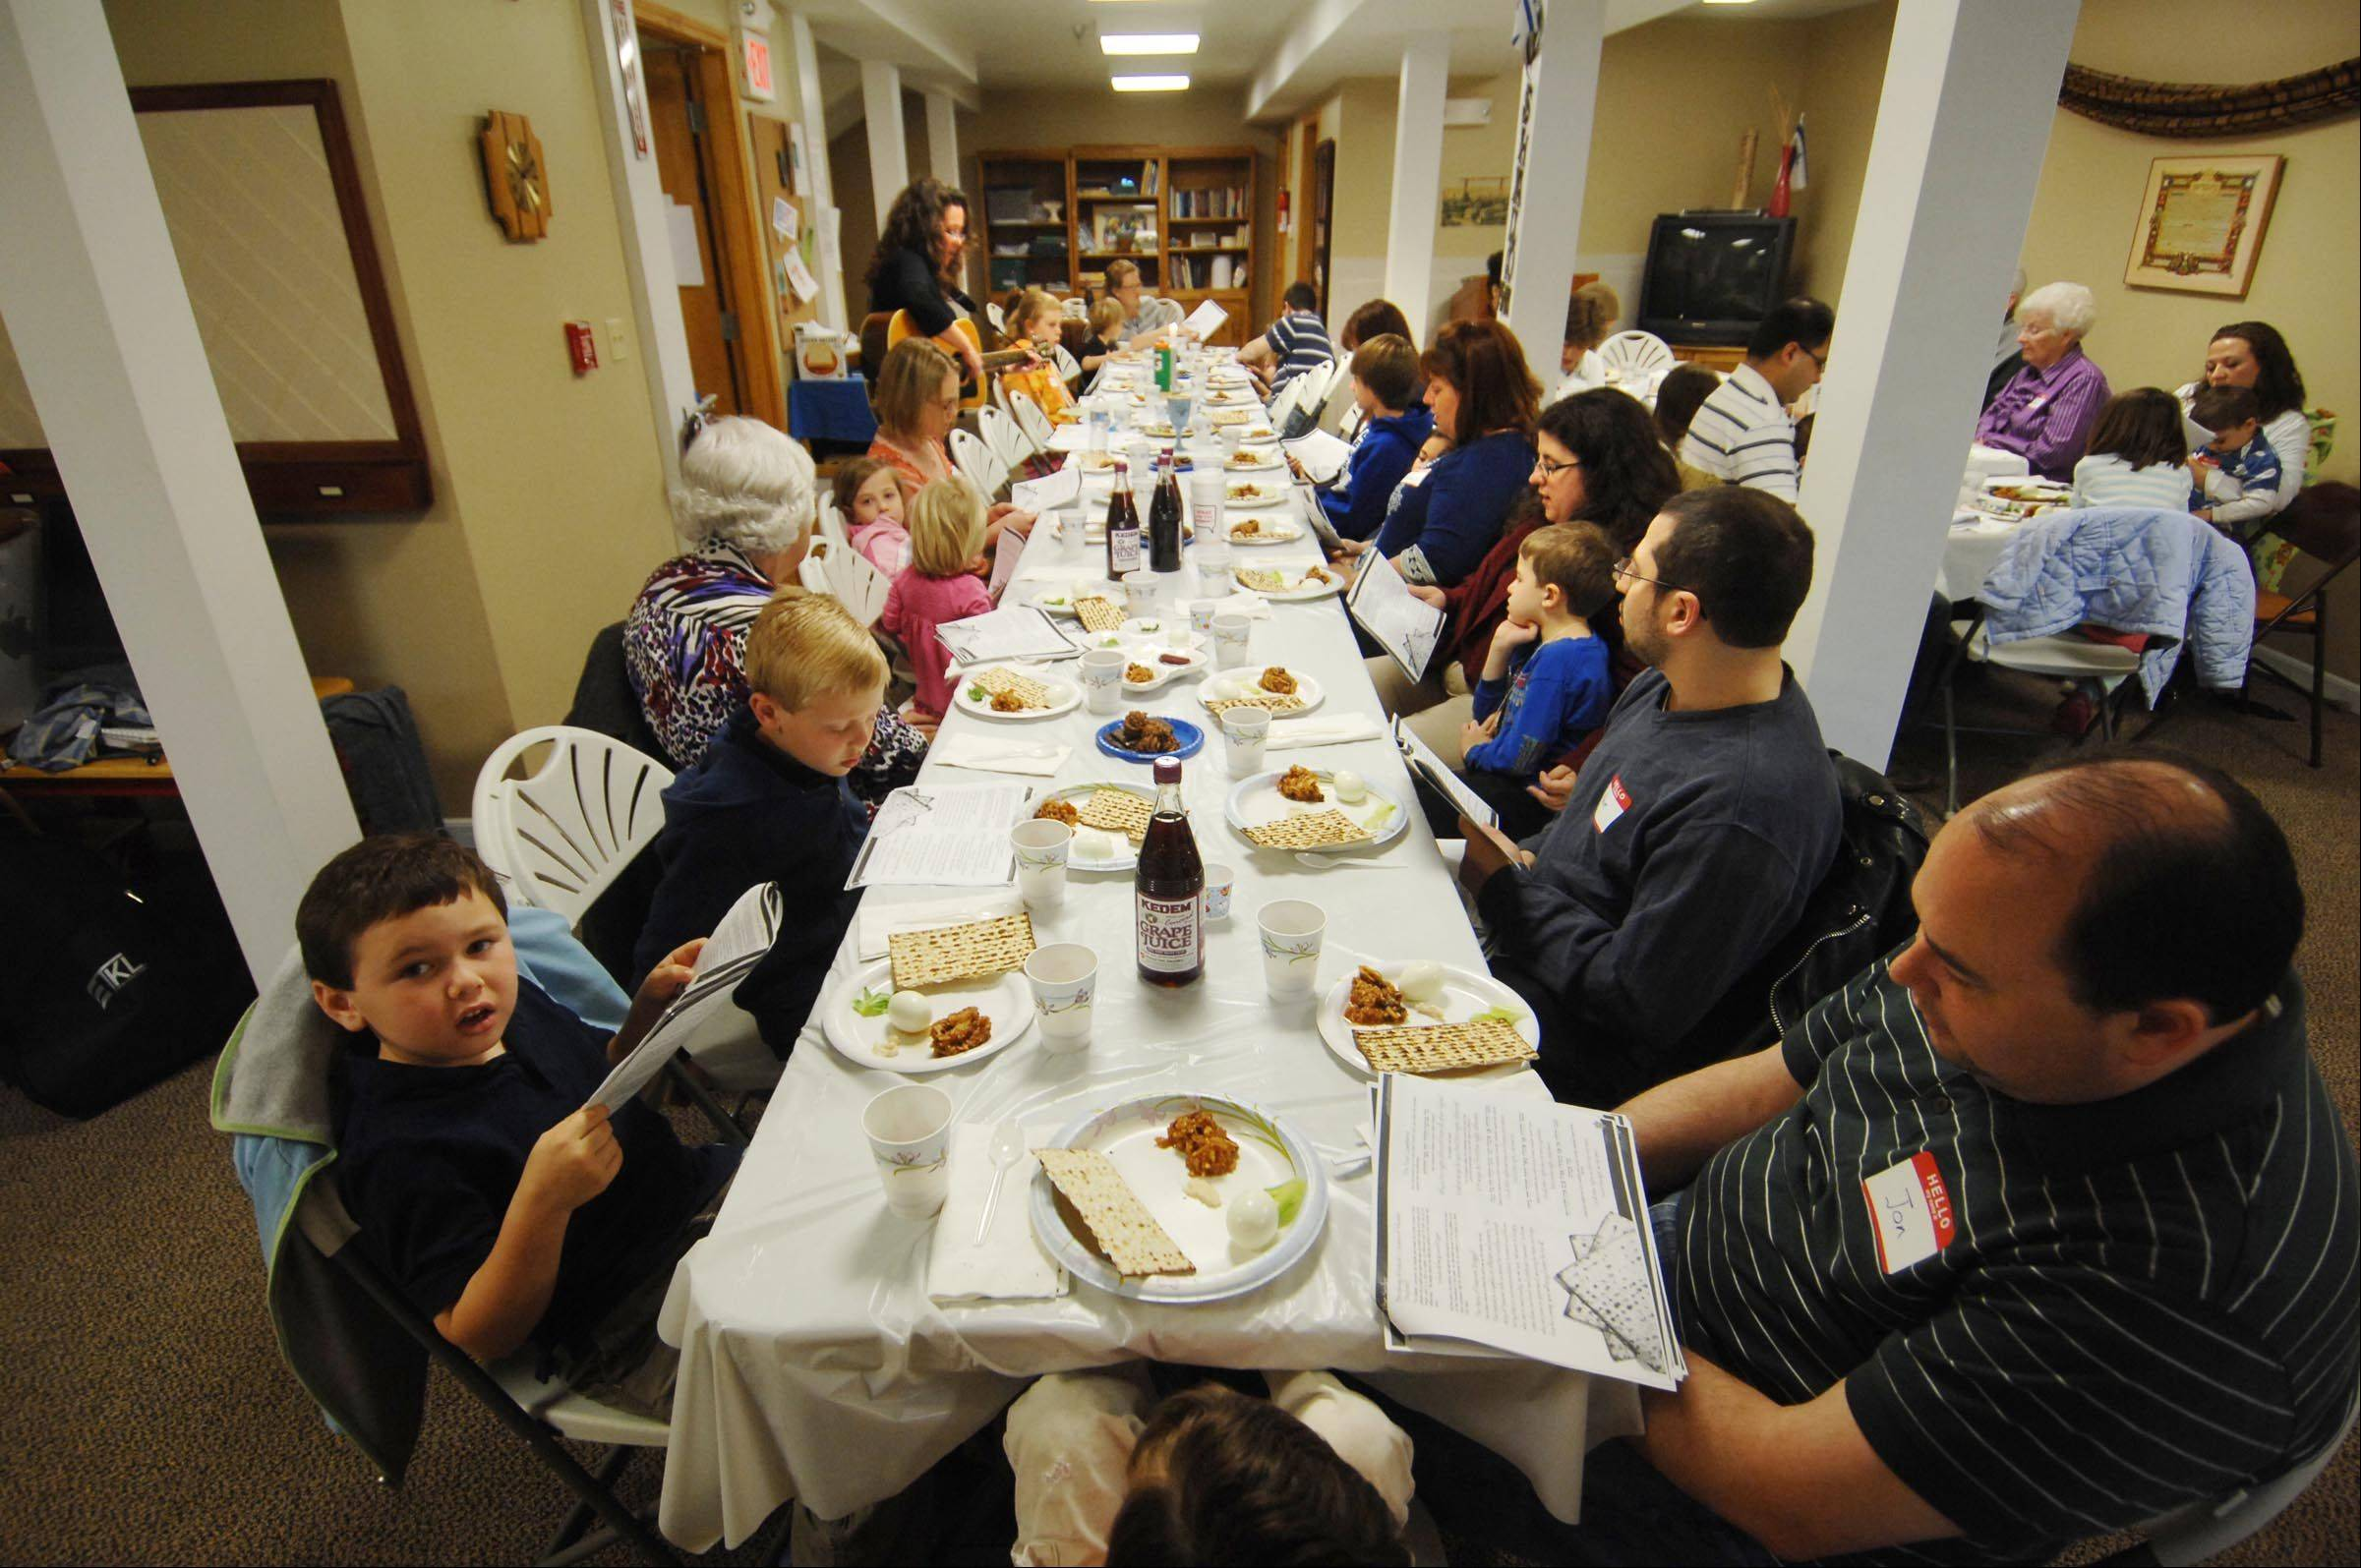 Families recite passages and sing as they attend a model Seder during religious school Sunday morning at the Fox Valley Jewish Neighbors in Geneva. A traditional Seder is meant to be participatory with all members of a family contributing to retelling the story of Passover.